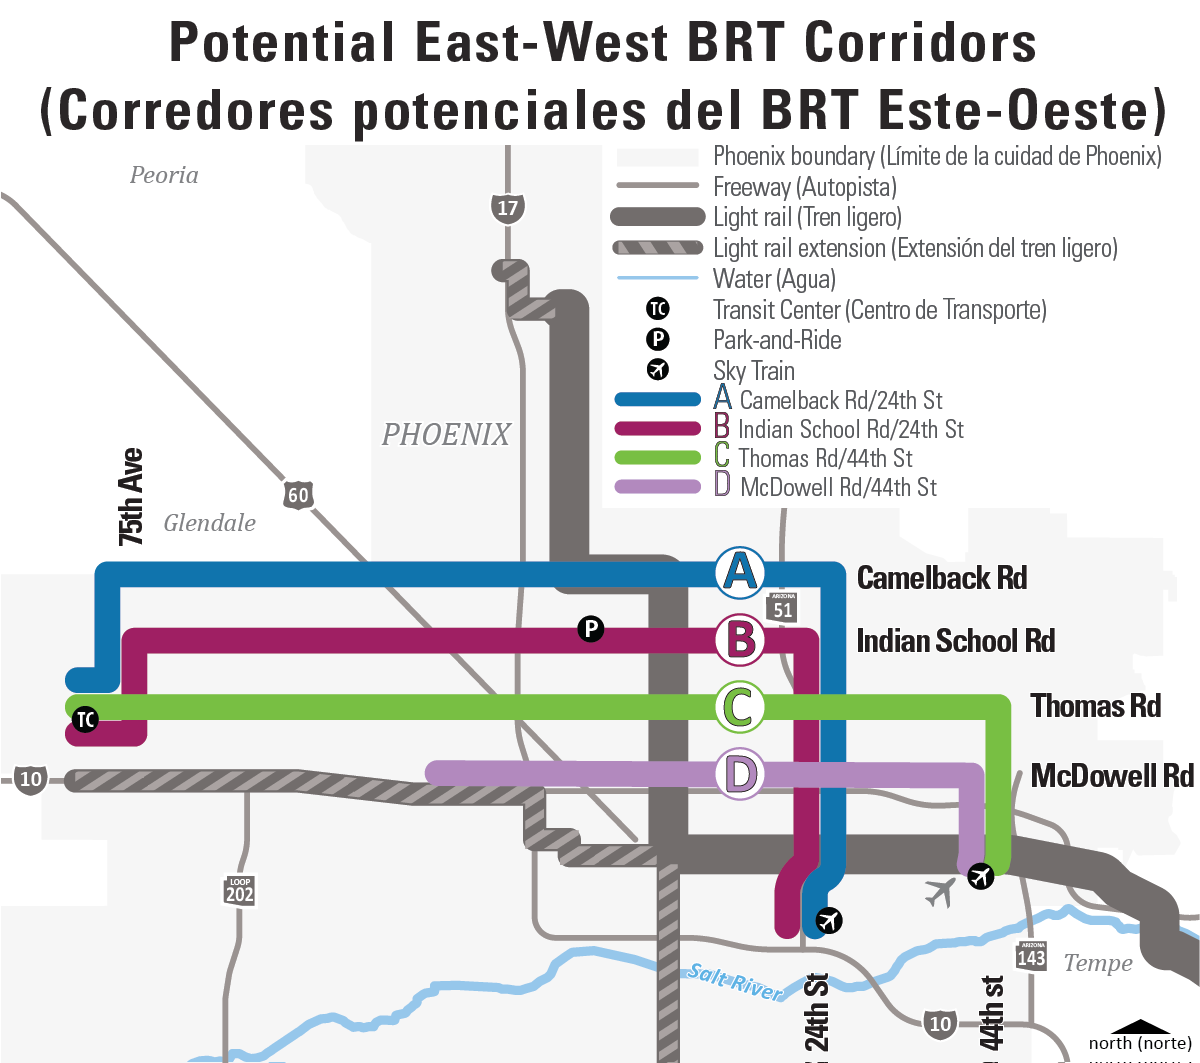 Potential East-West BRT Corridors (Corredores potenciales del BRT Este-Oeste) Map: Camelback Rd/24th St (A) Indian School Rd/24th St (B) Thomas Rd/44th St (C) McDowell Rd/44th St (D)